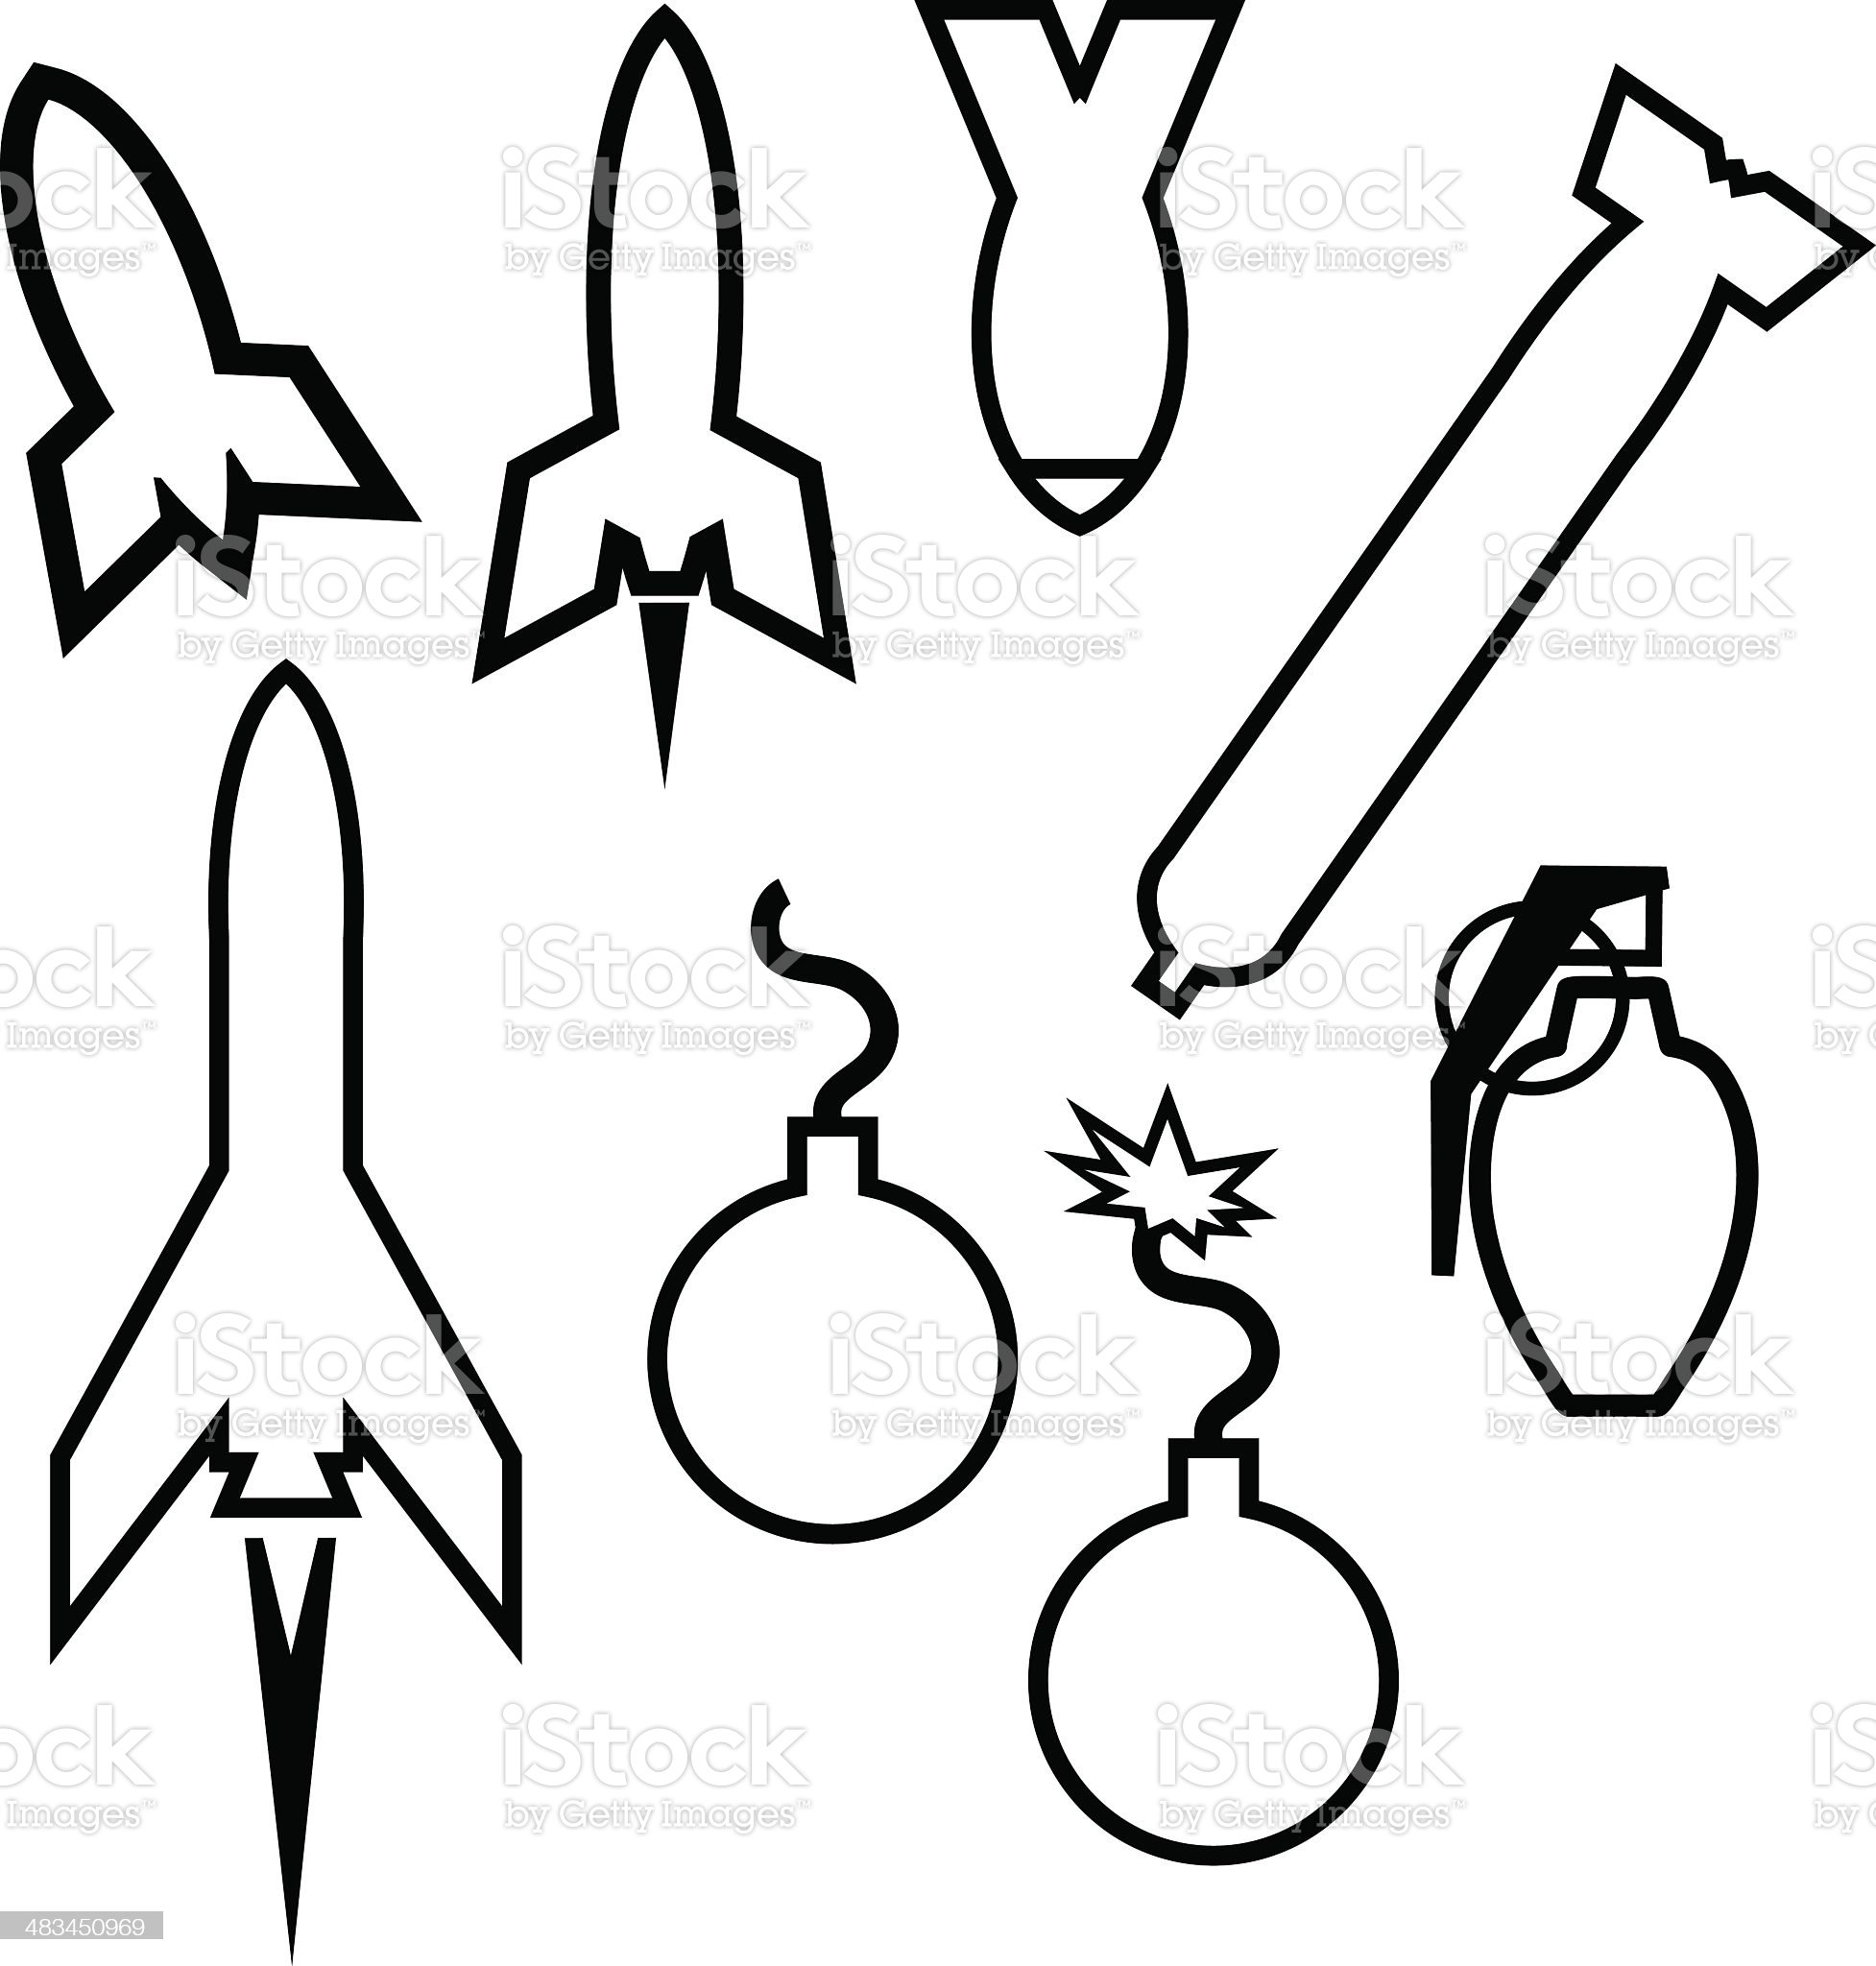 Bomb Icons and Outlines - 1 credit royalty-free stock vector art